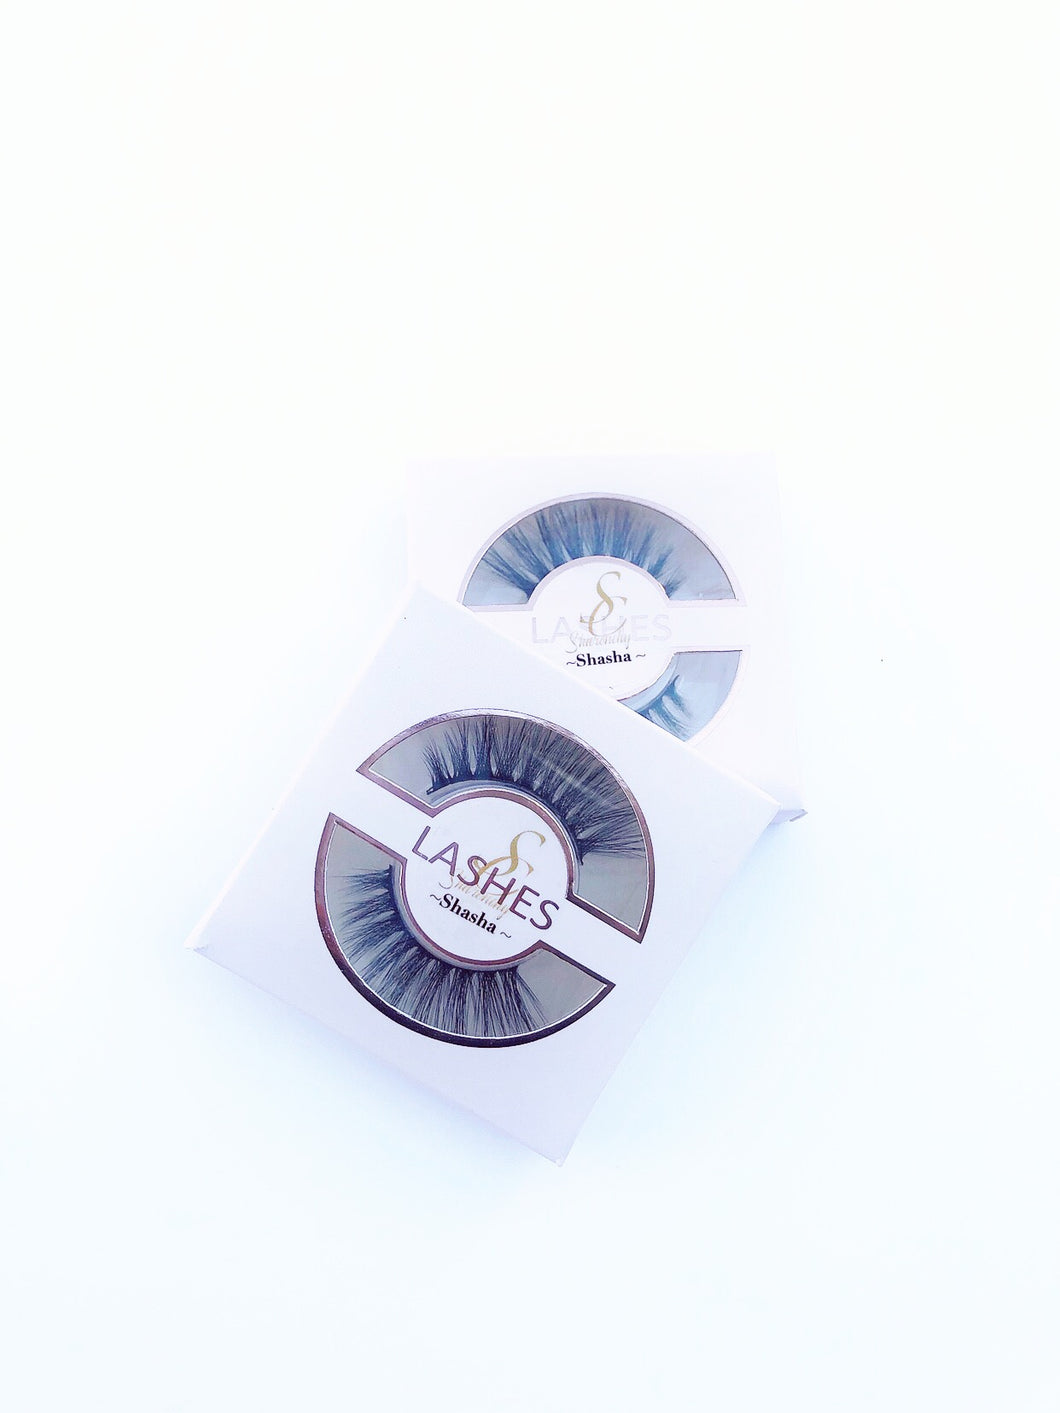 SHASHA Eyelashes Natural Long 3D Mink